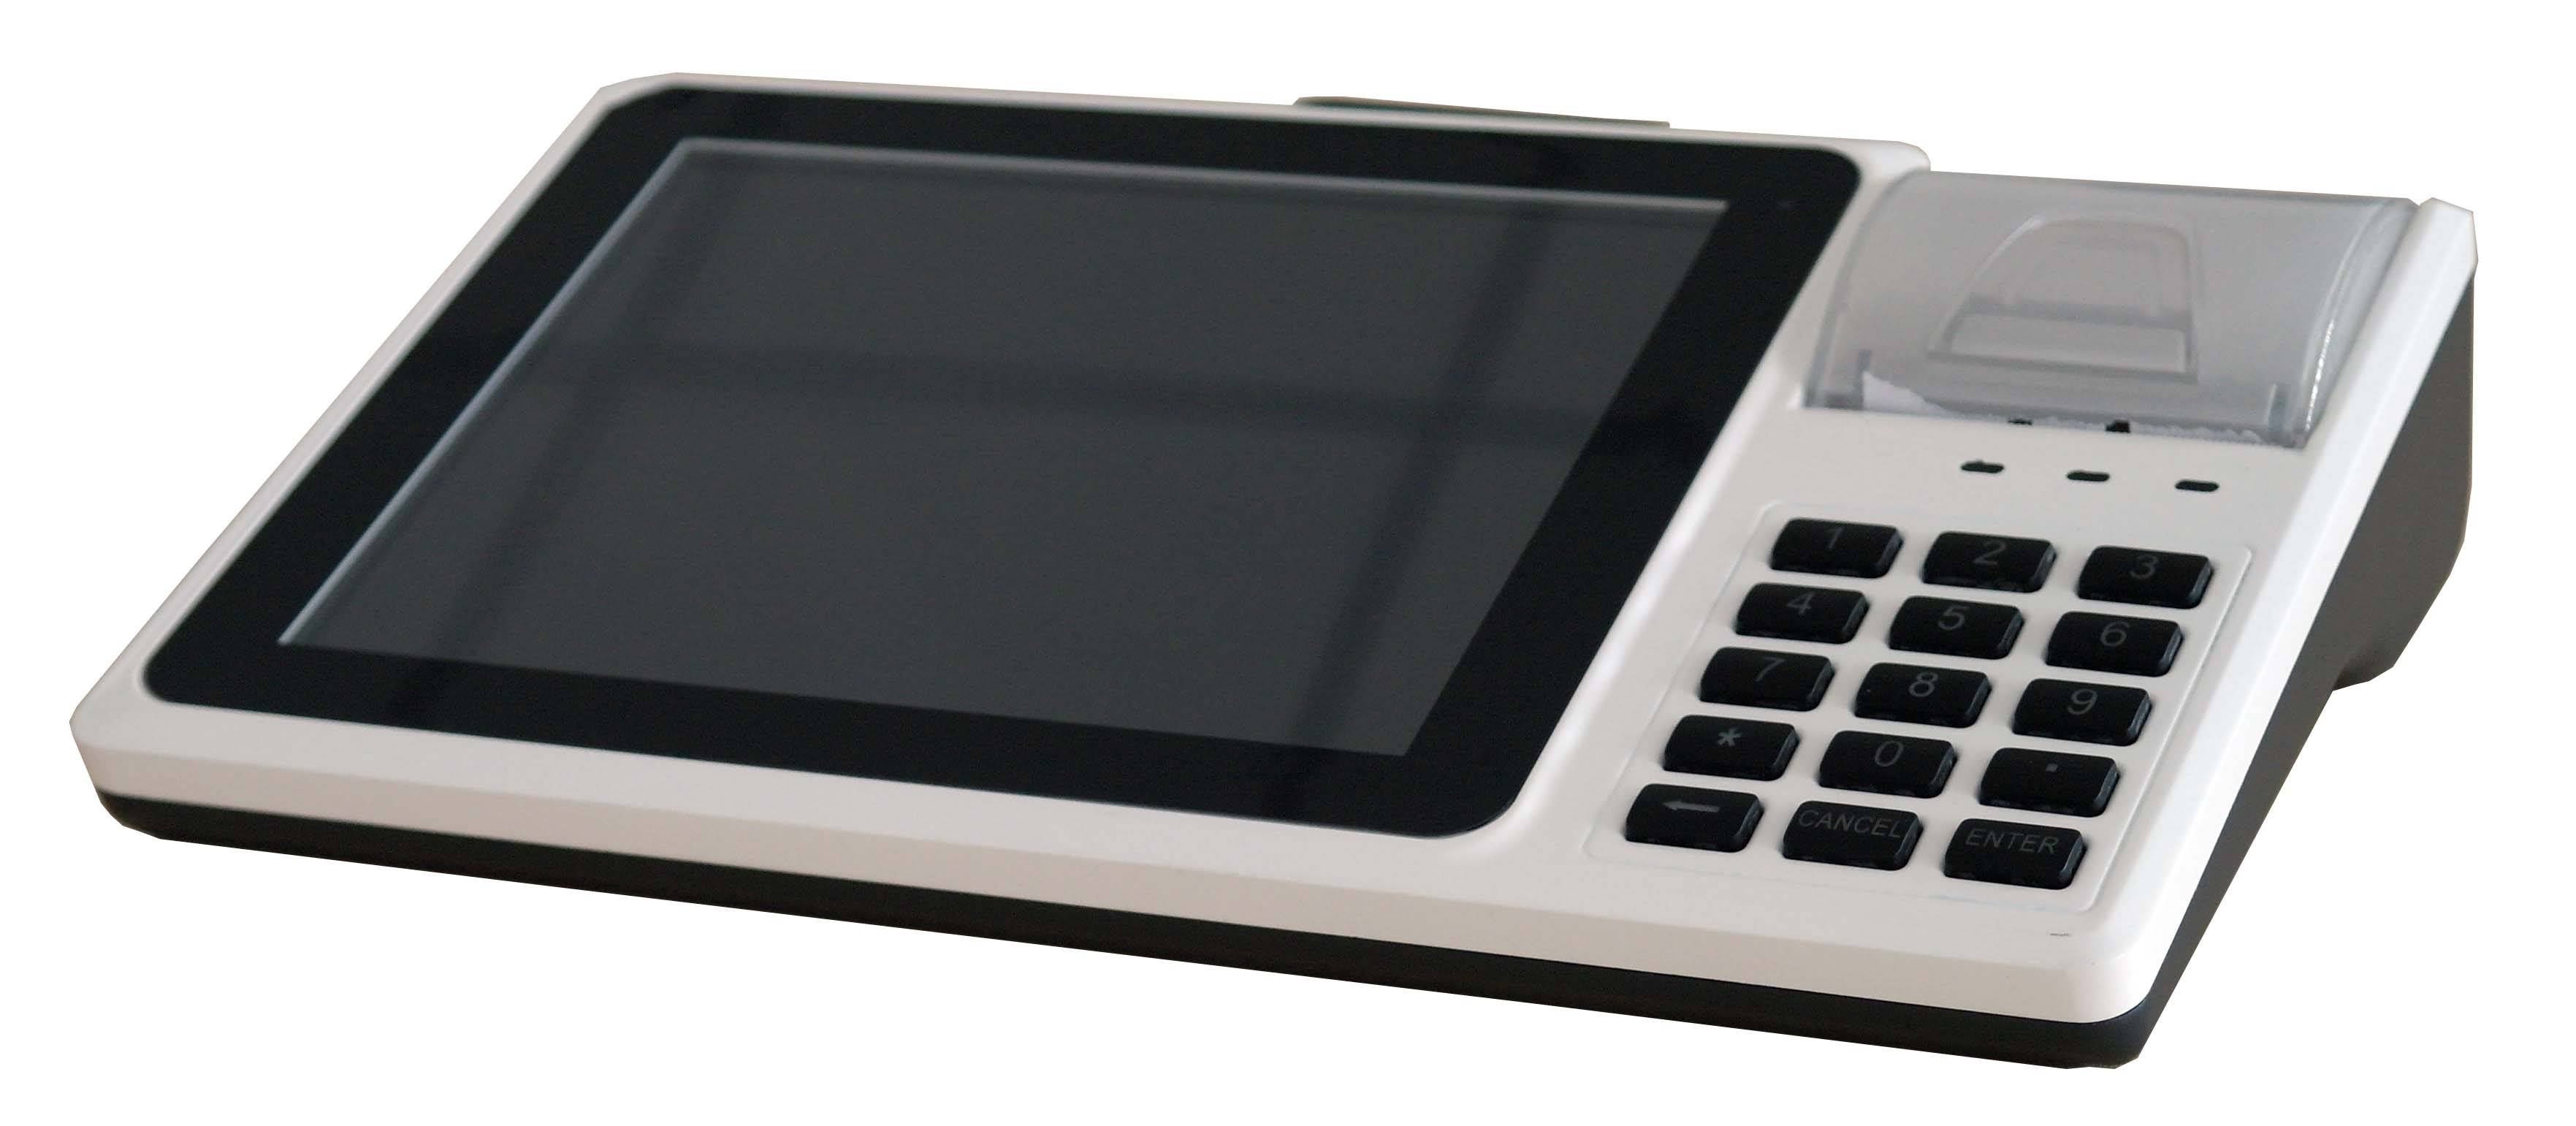 """IDT800 8"""" Capacitive Touch Screen Android 4.2 POS"""